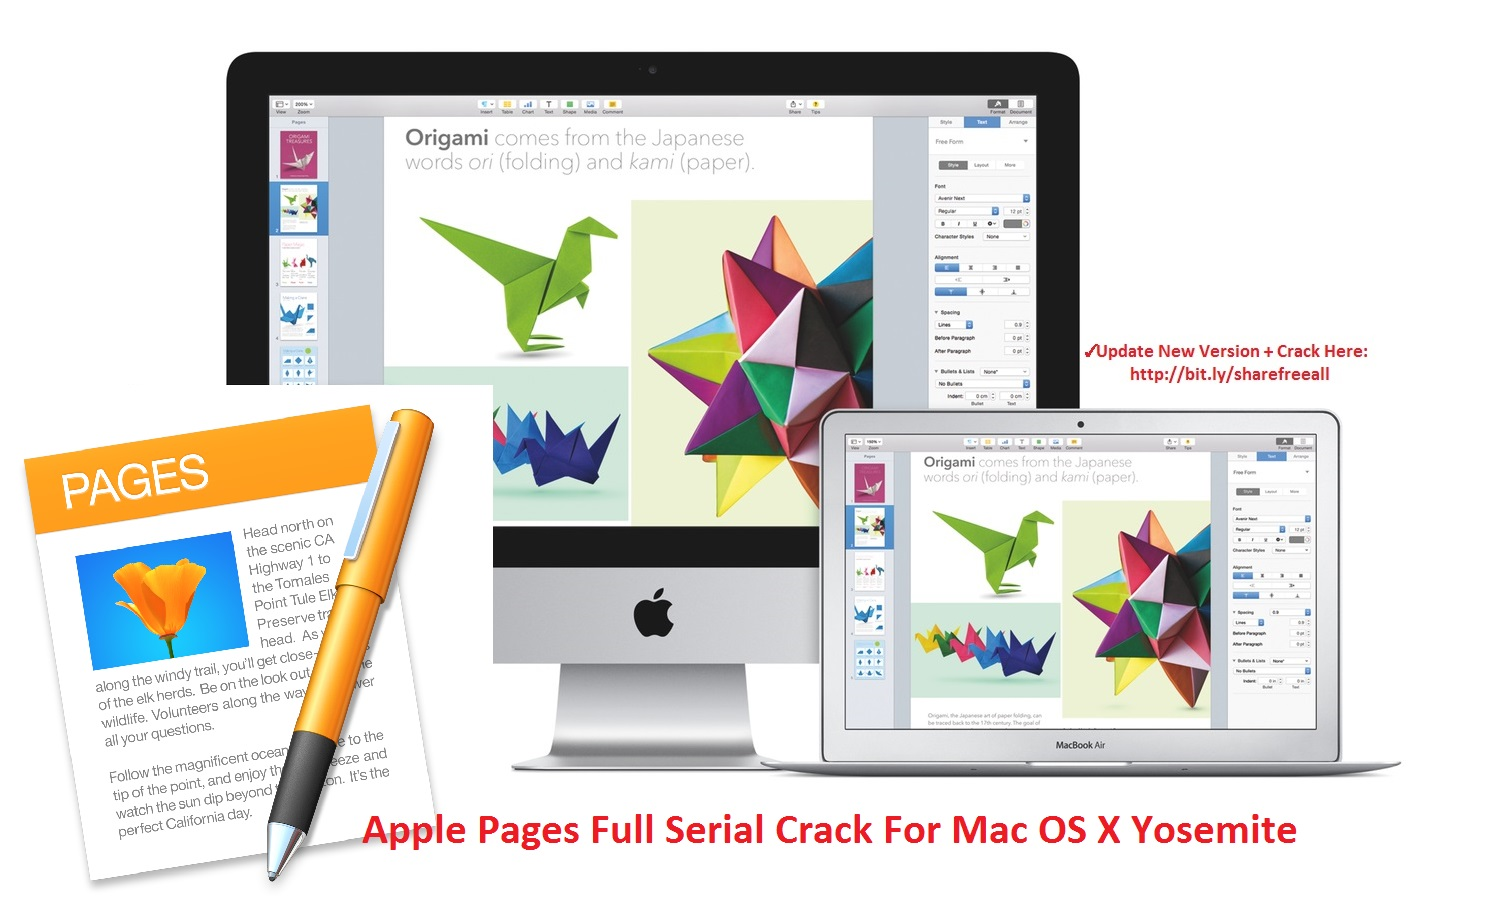 Apple Pages 6.1 Cracked Serial For Mac OS Sierra Free Download